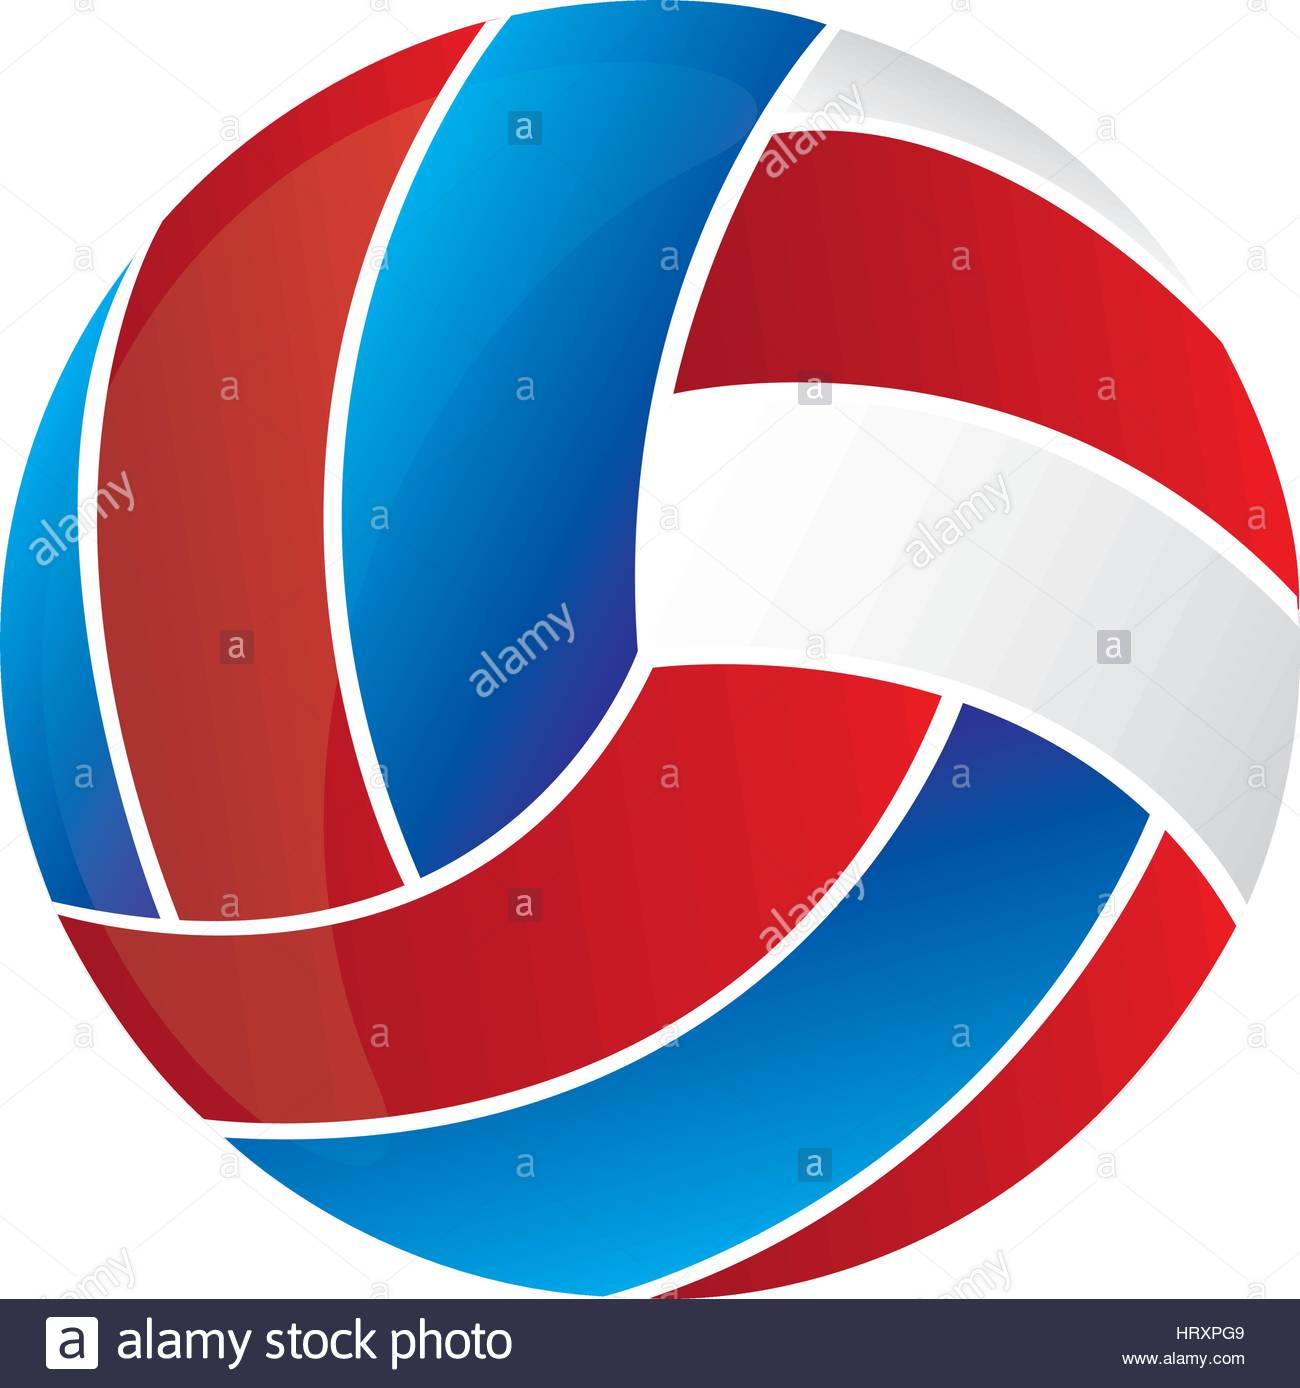 1300x1388 Colorful Silhouette With Volleyball Ball Vector Illustration Stock